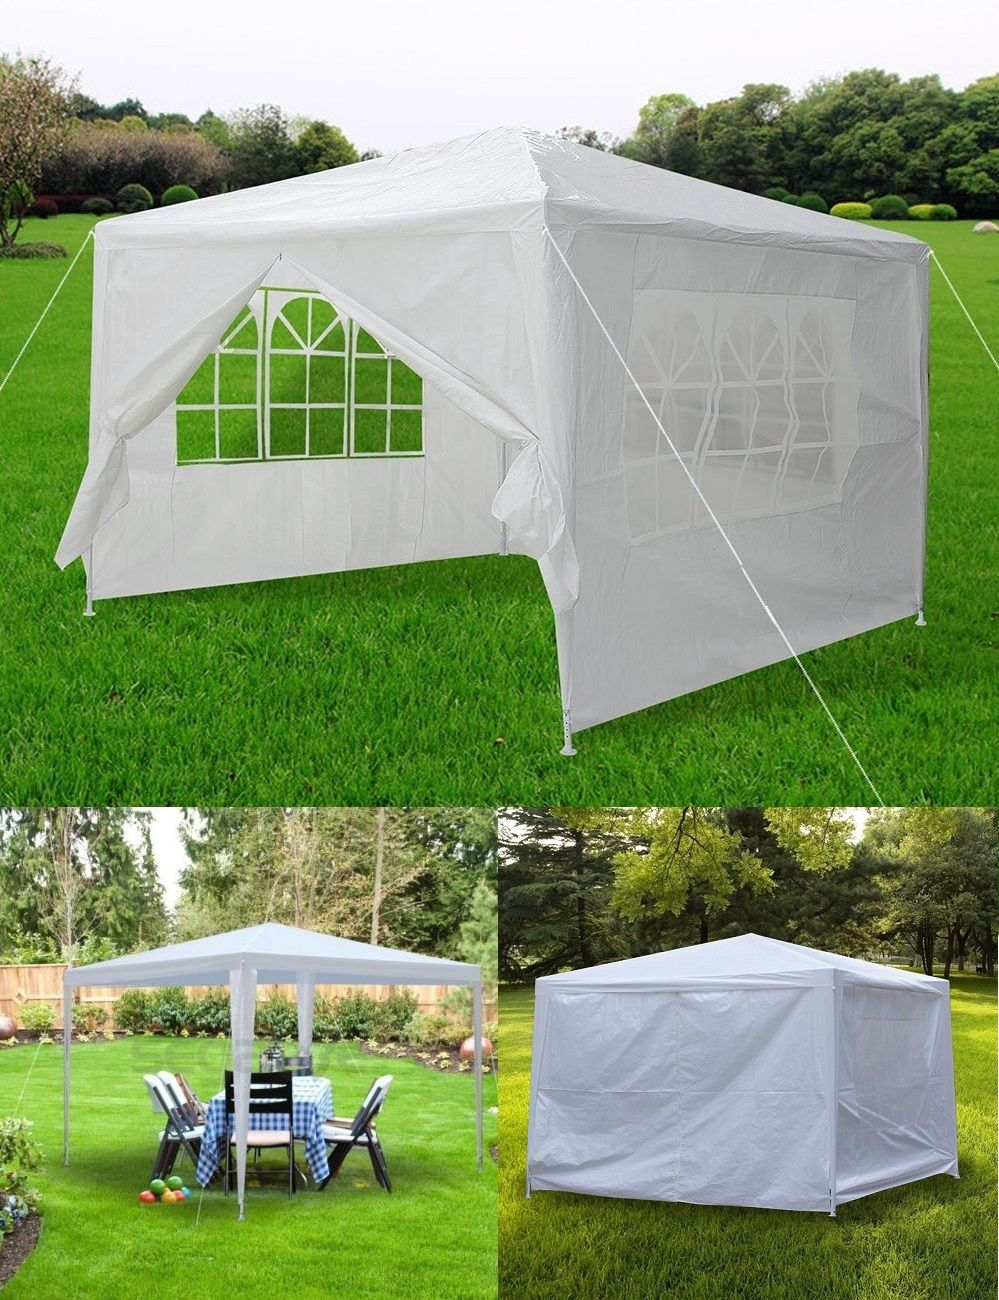 Zeny 10' x 10' White outdoor Wedding Party Tent patio Gazebo Canopy with Side Walls by Zeny